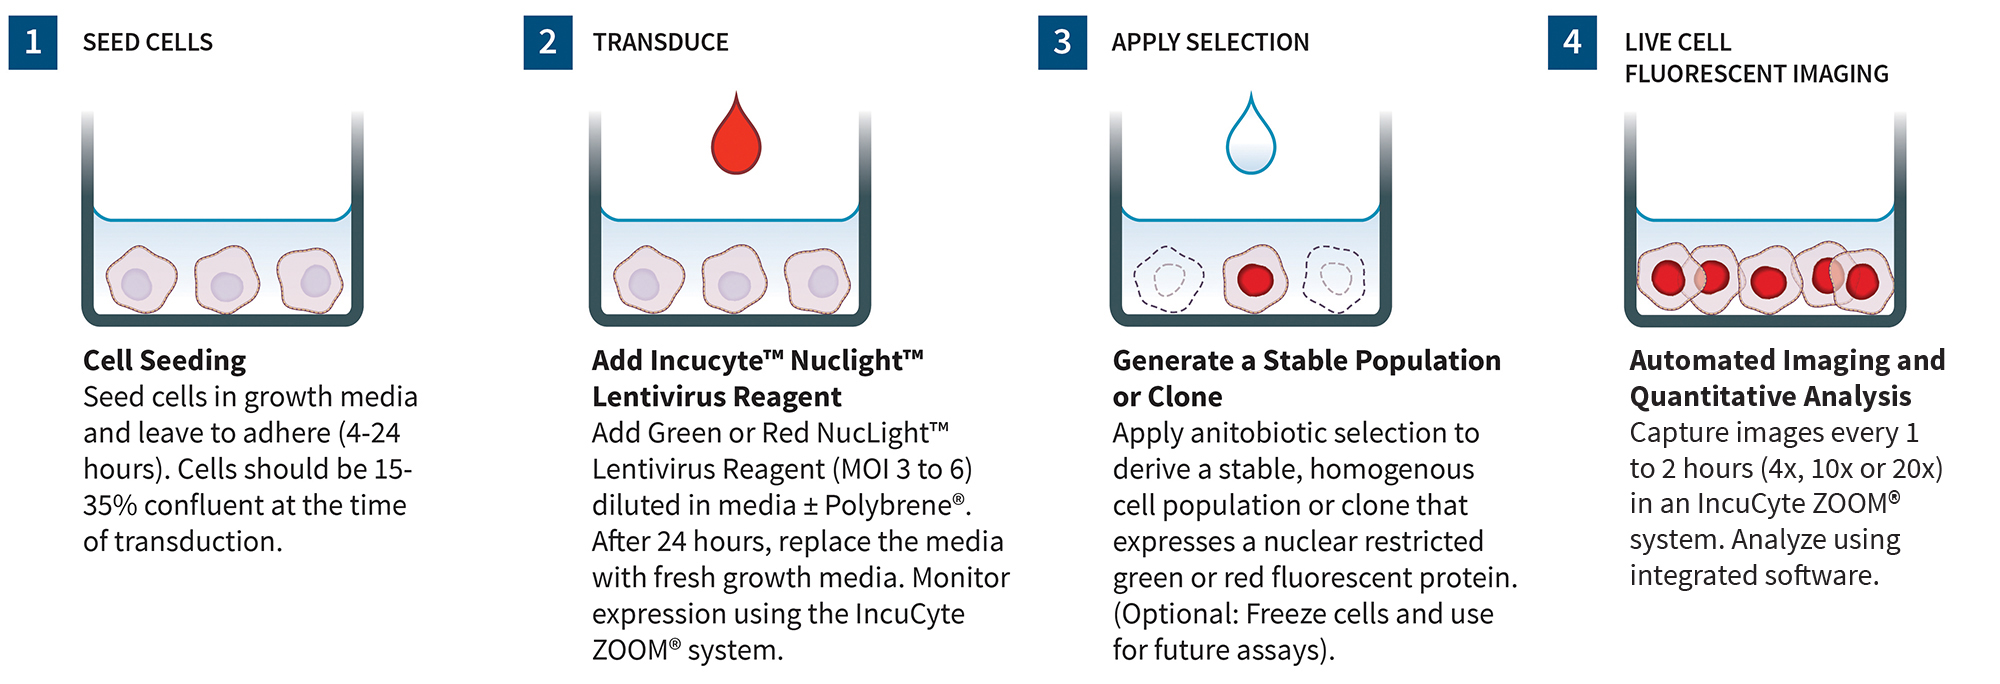 IncuCyte® NucLight Lentivirus Reagents